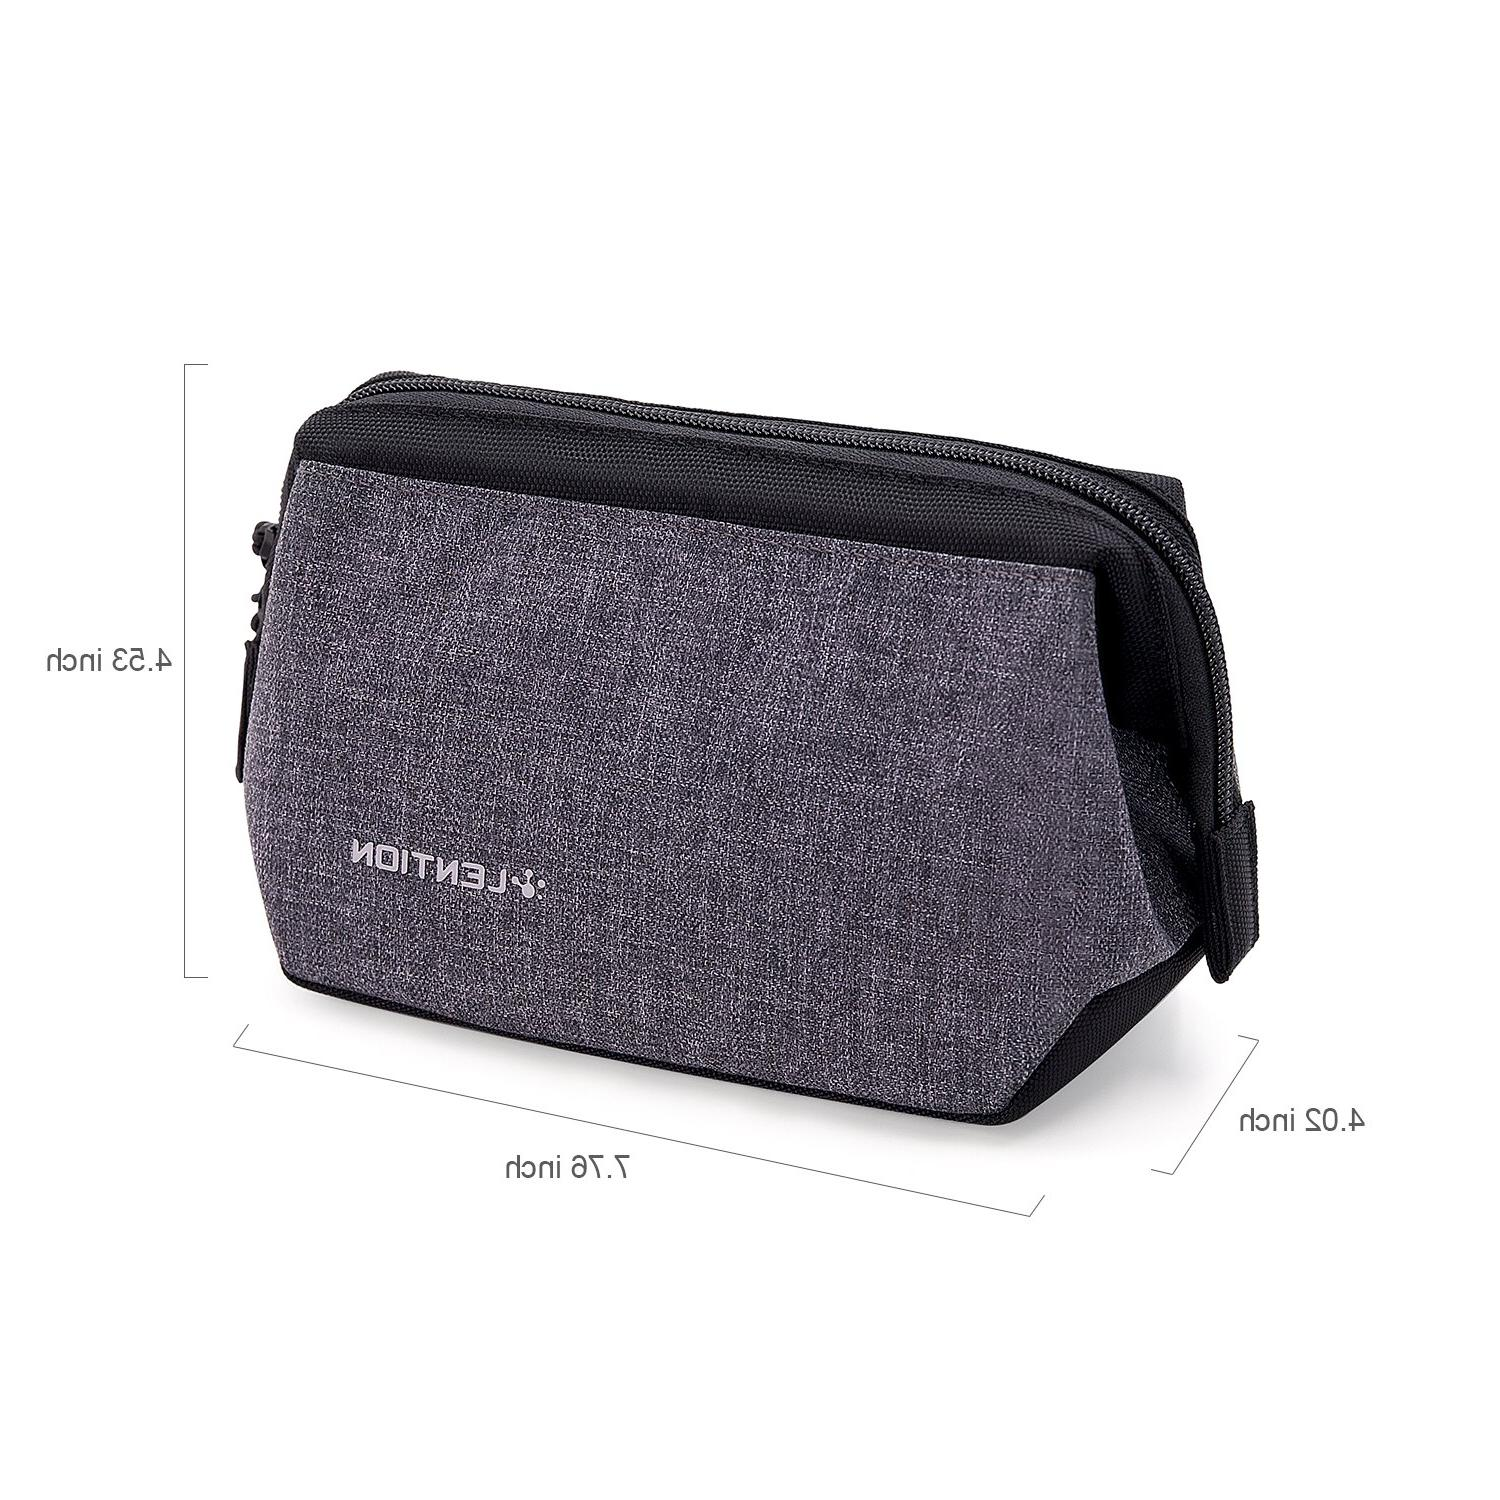 Compact Carrying <font><b>Sleeve</b></font> <font><b>Laptop</b></font>/Tablet Power Adapter, Charger, Wireless Mouse, Phone, and More